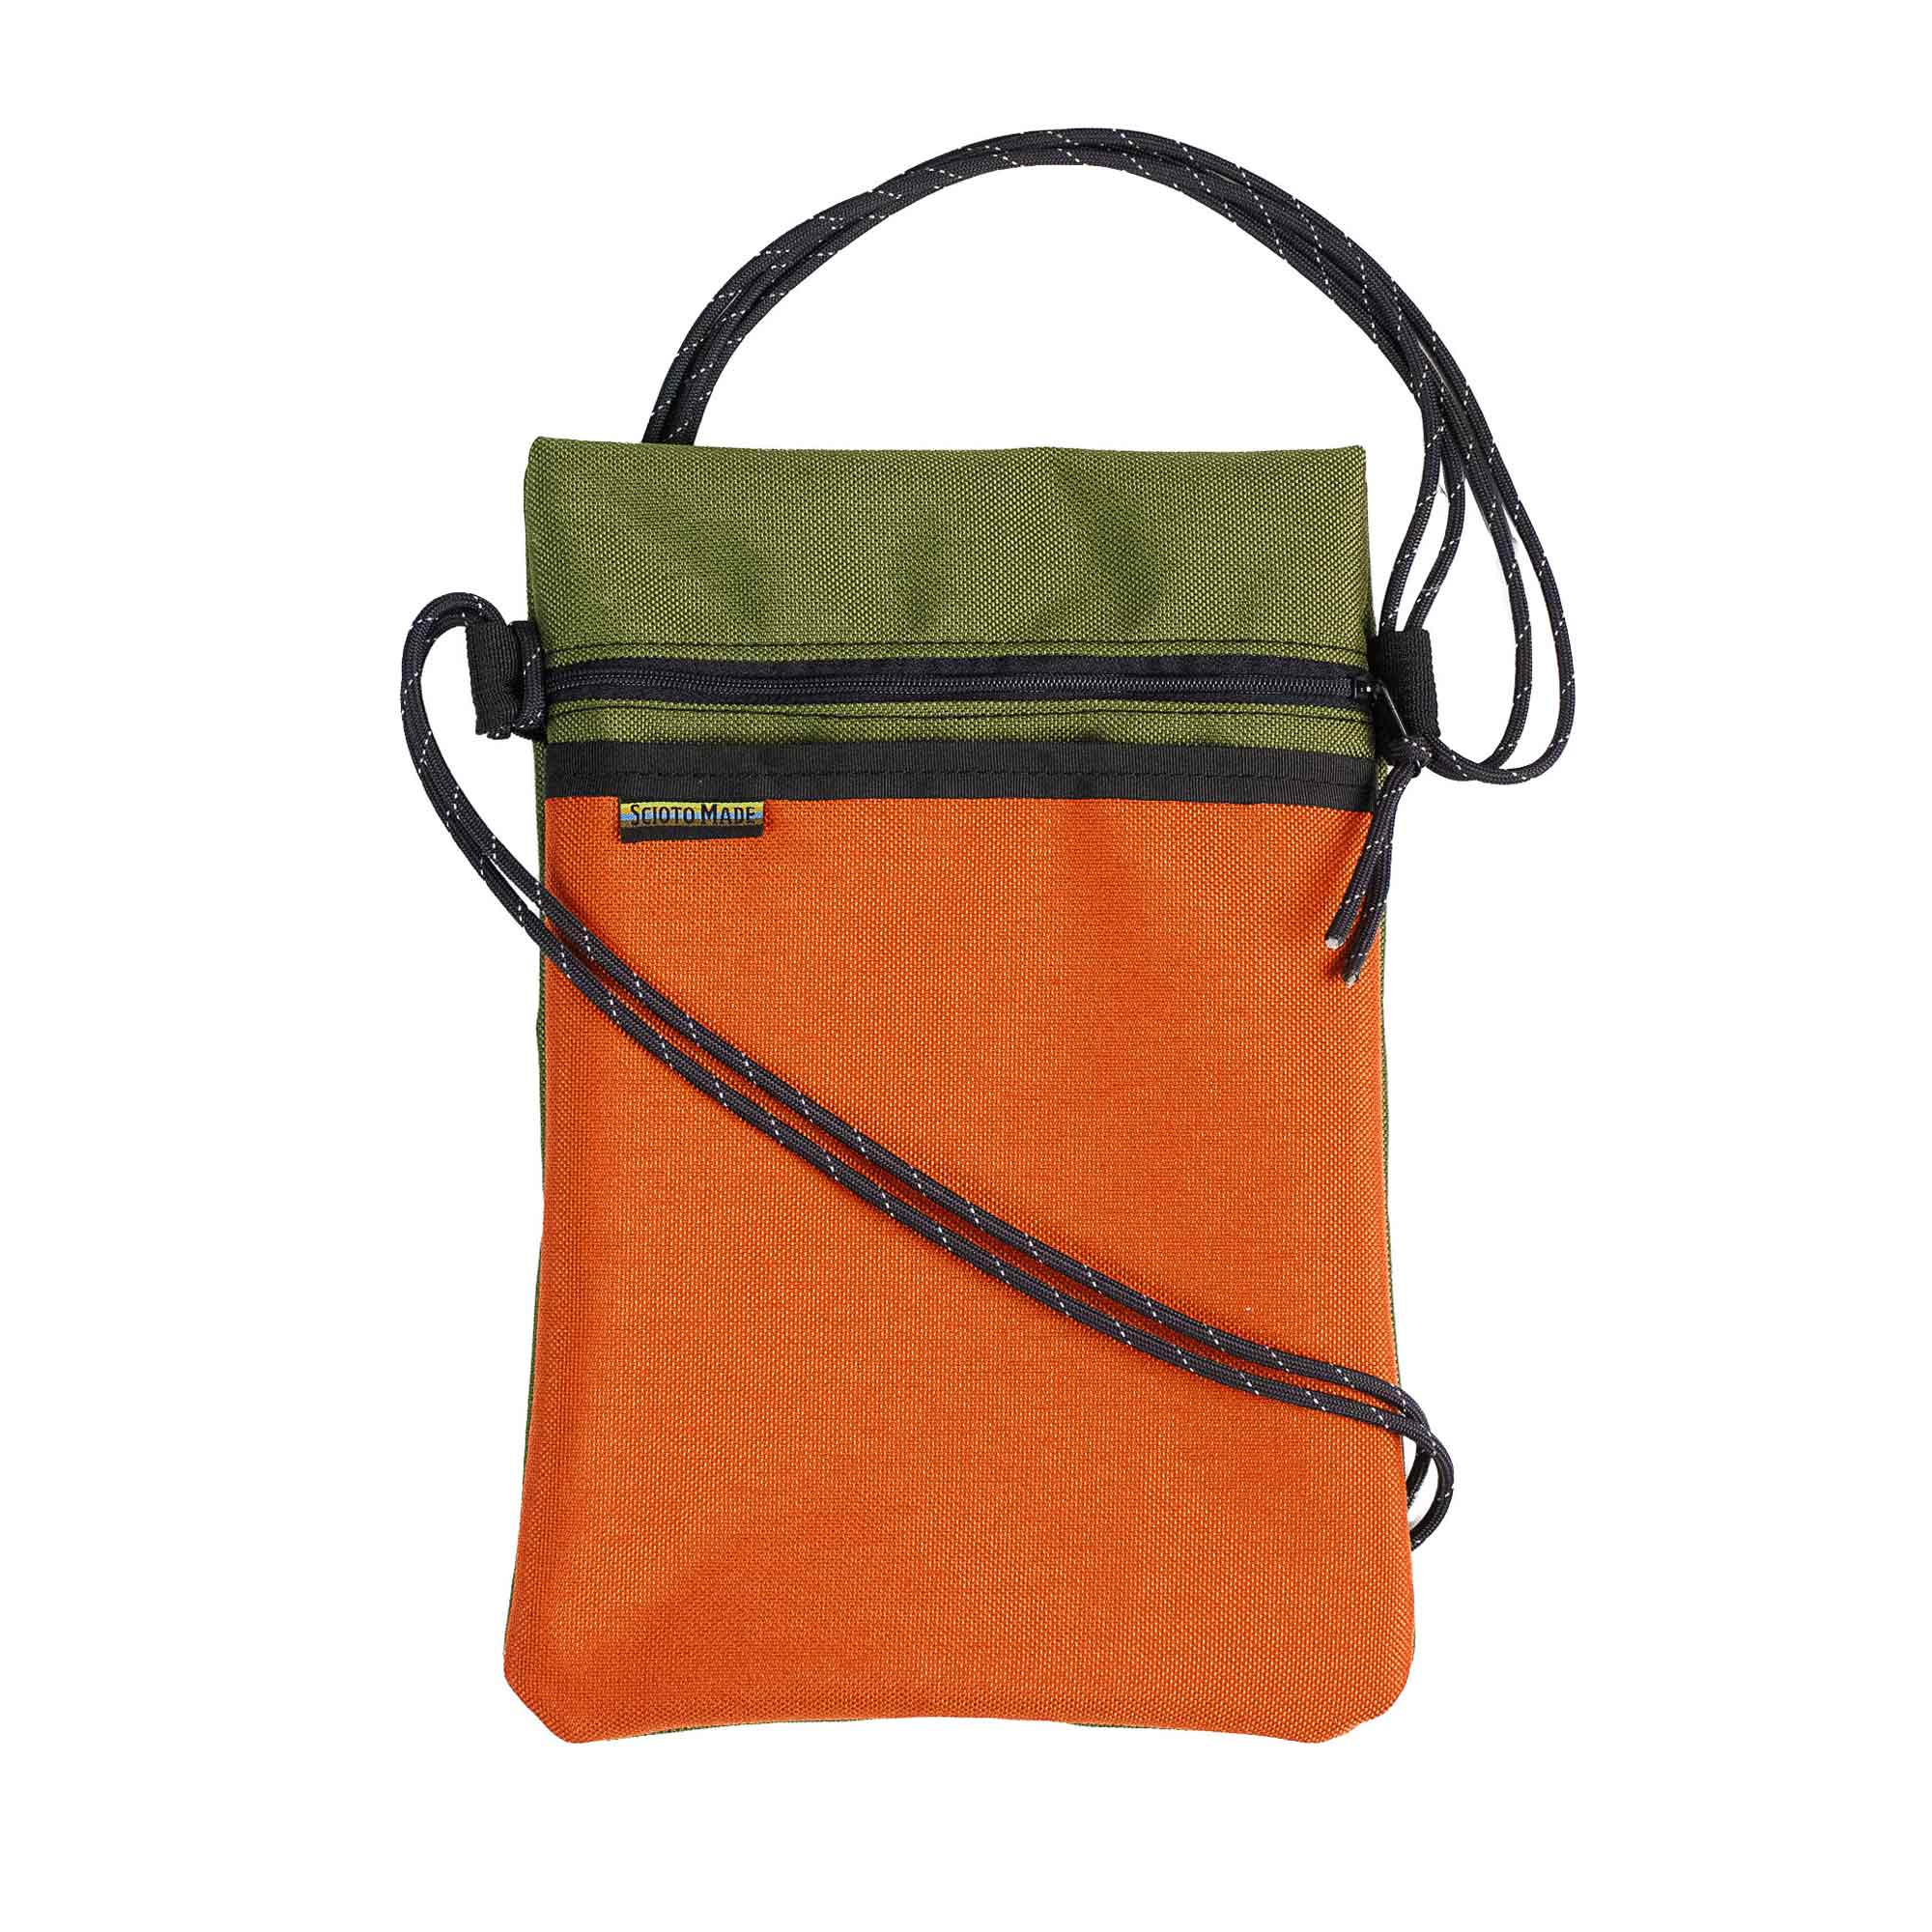 Scioto Made crossbody bag xover orange olive front view 01